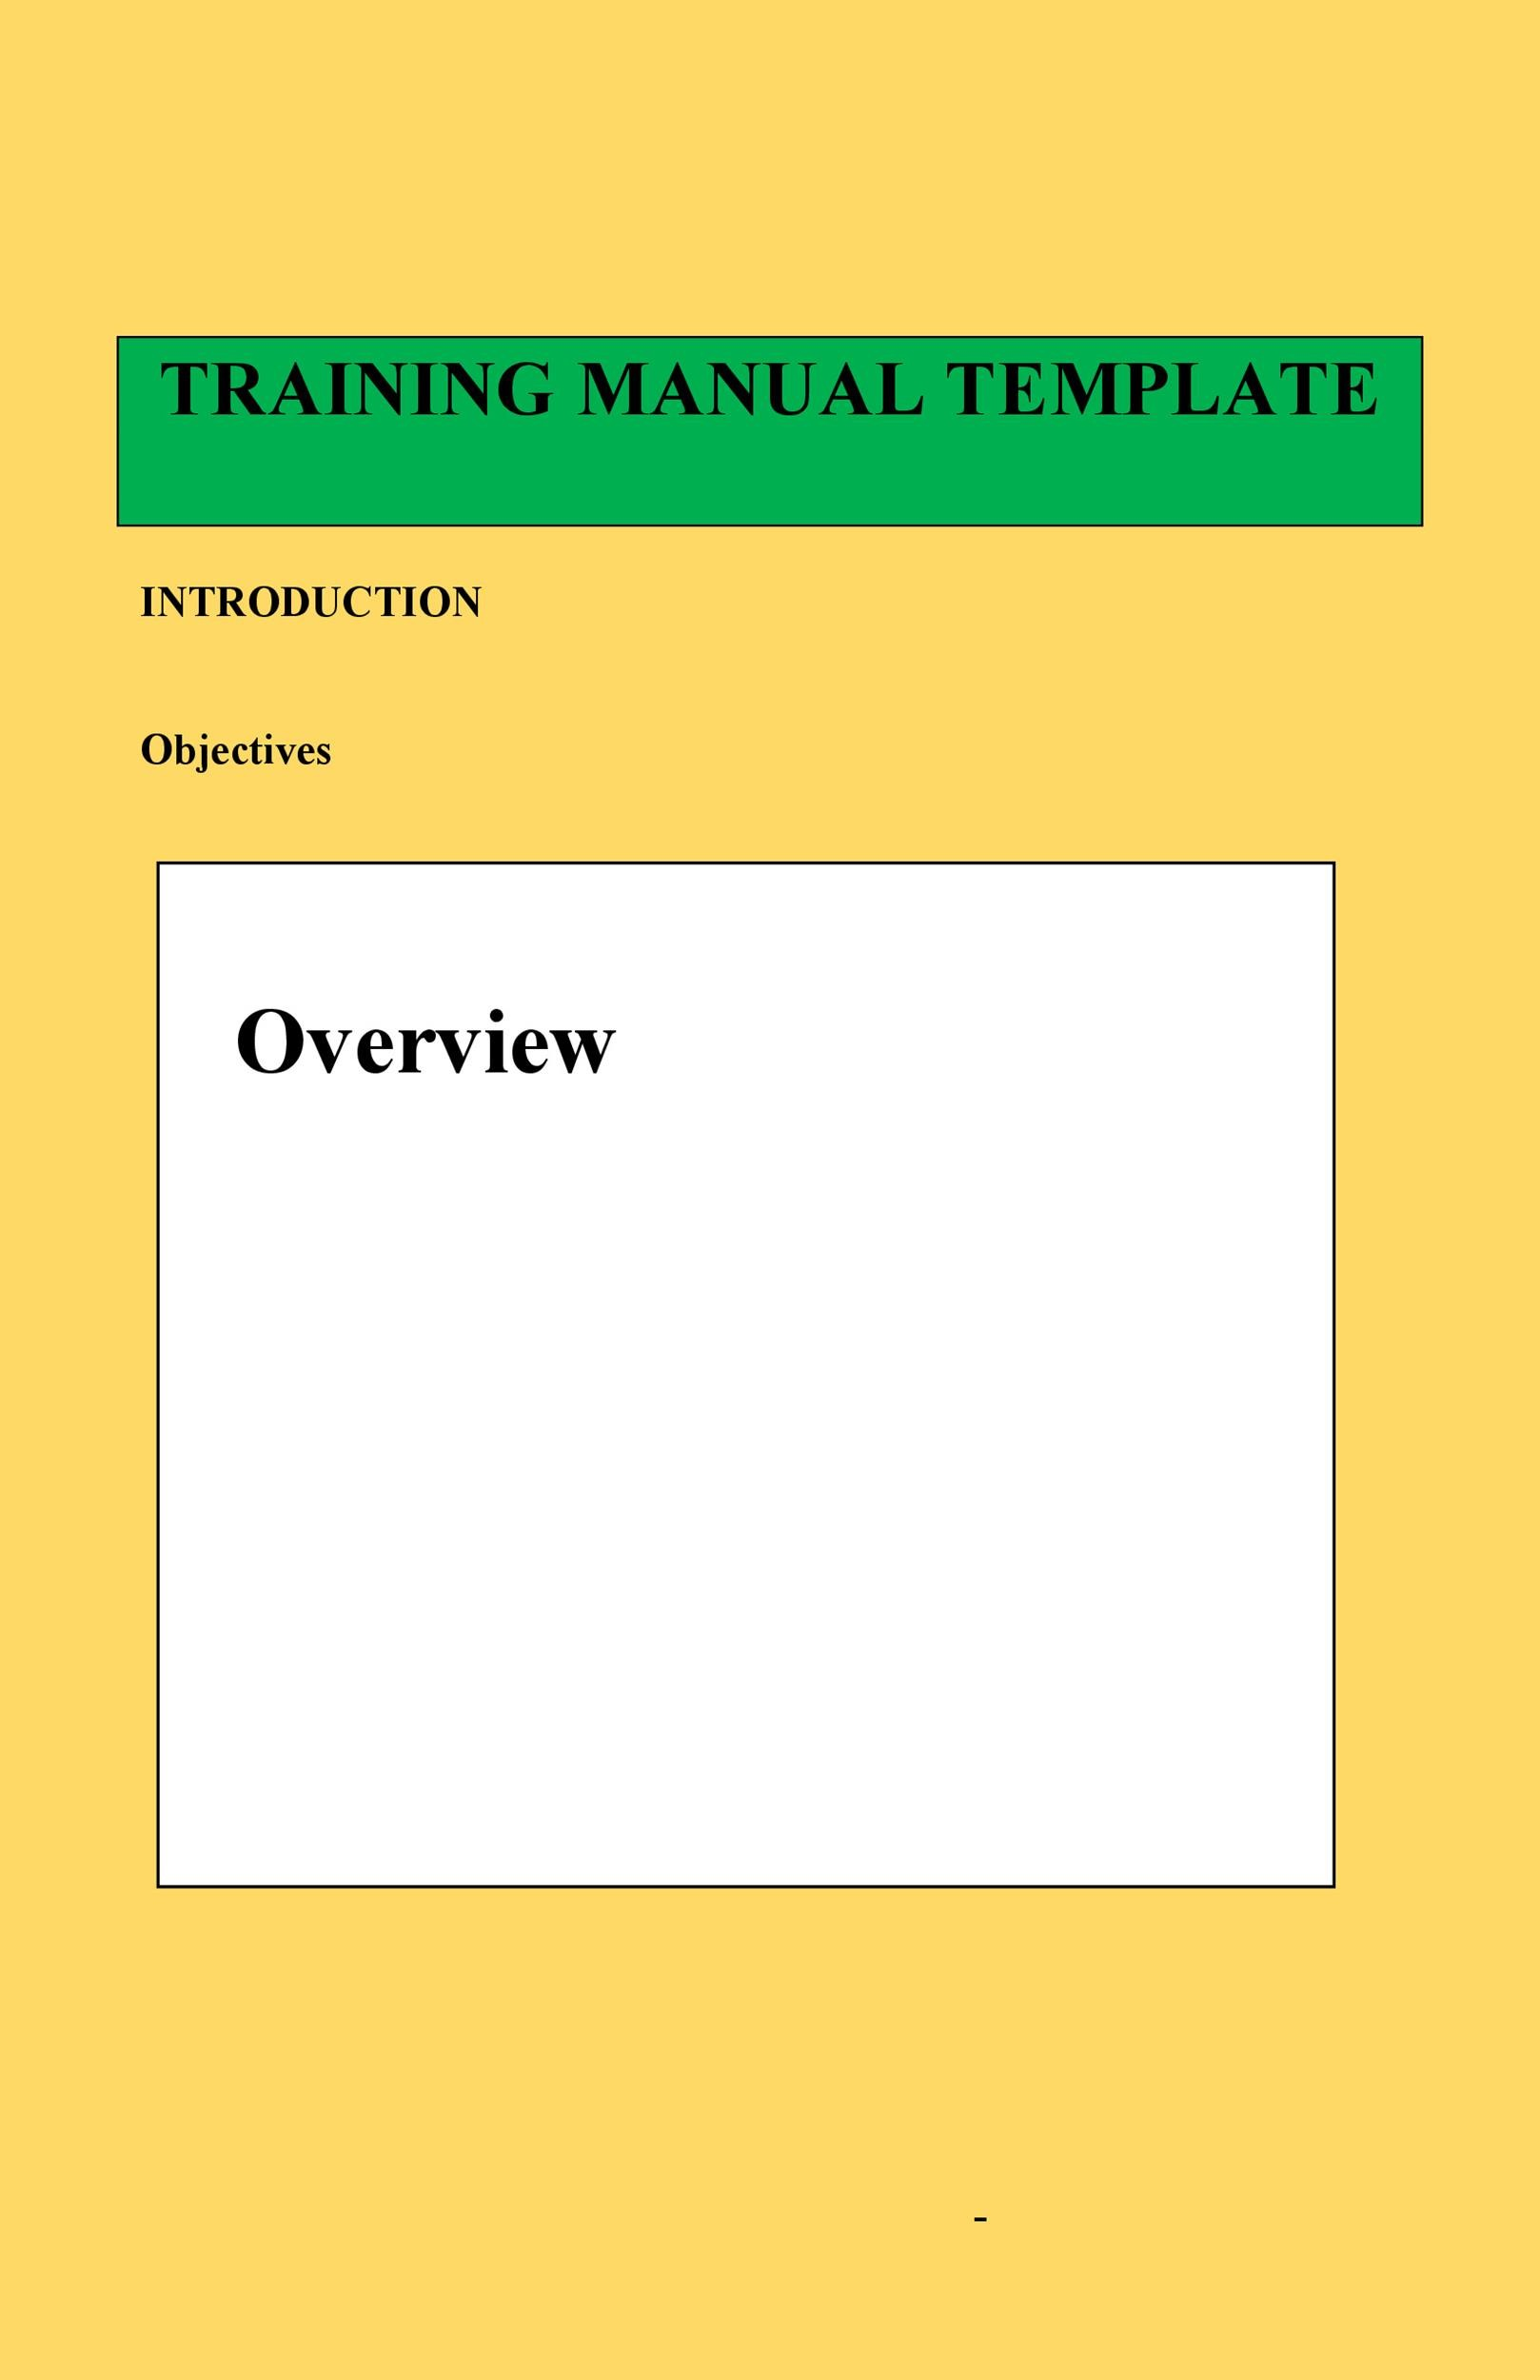 Free training manual template 10